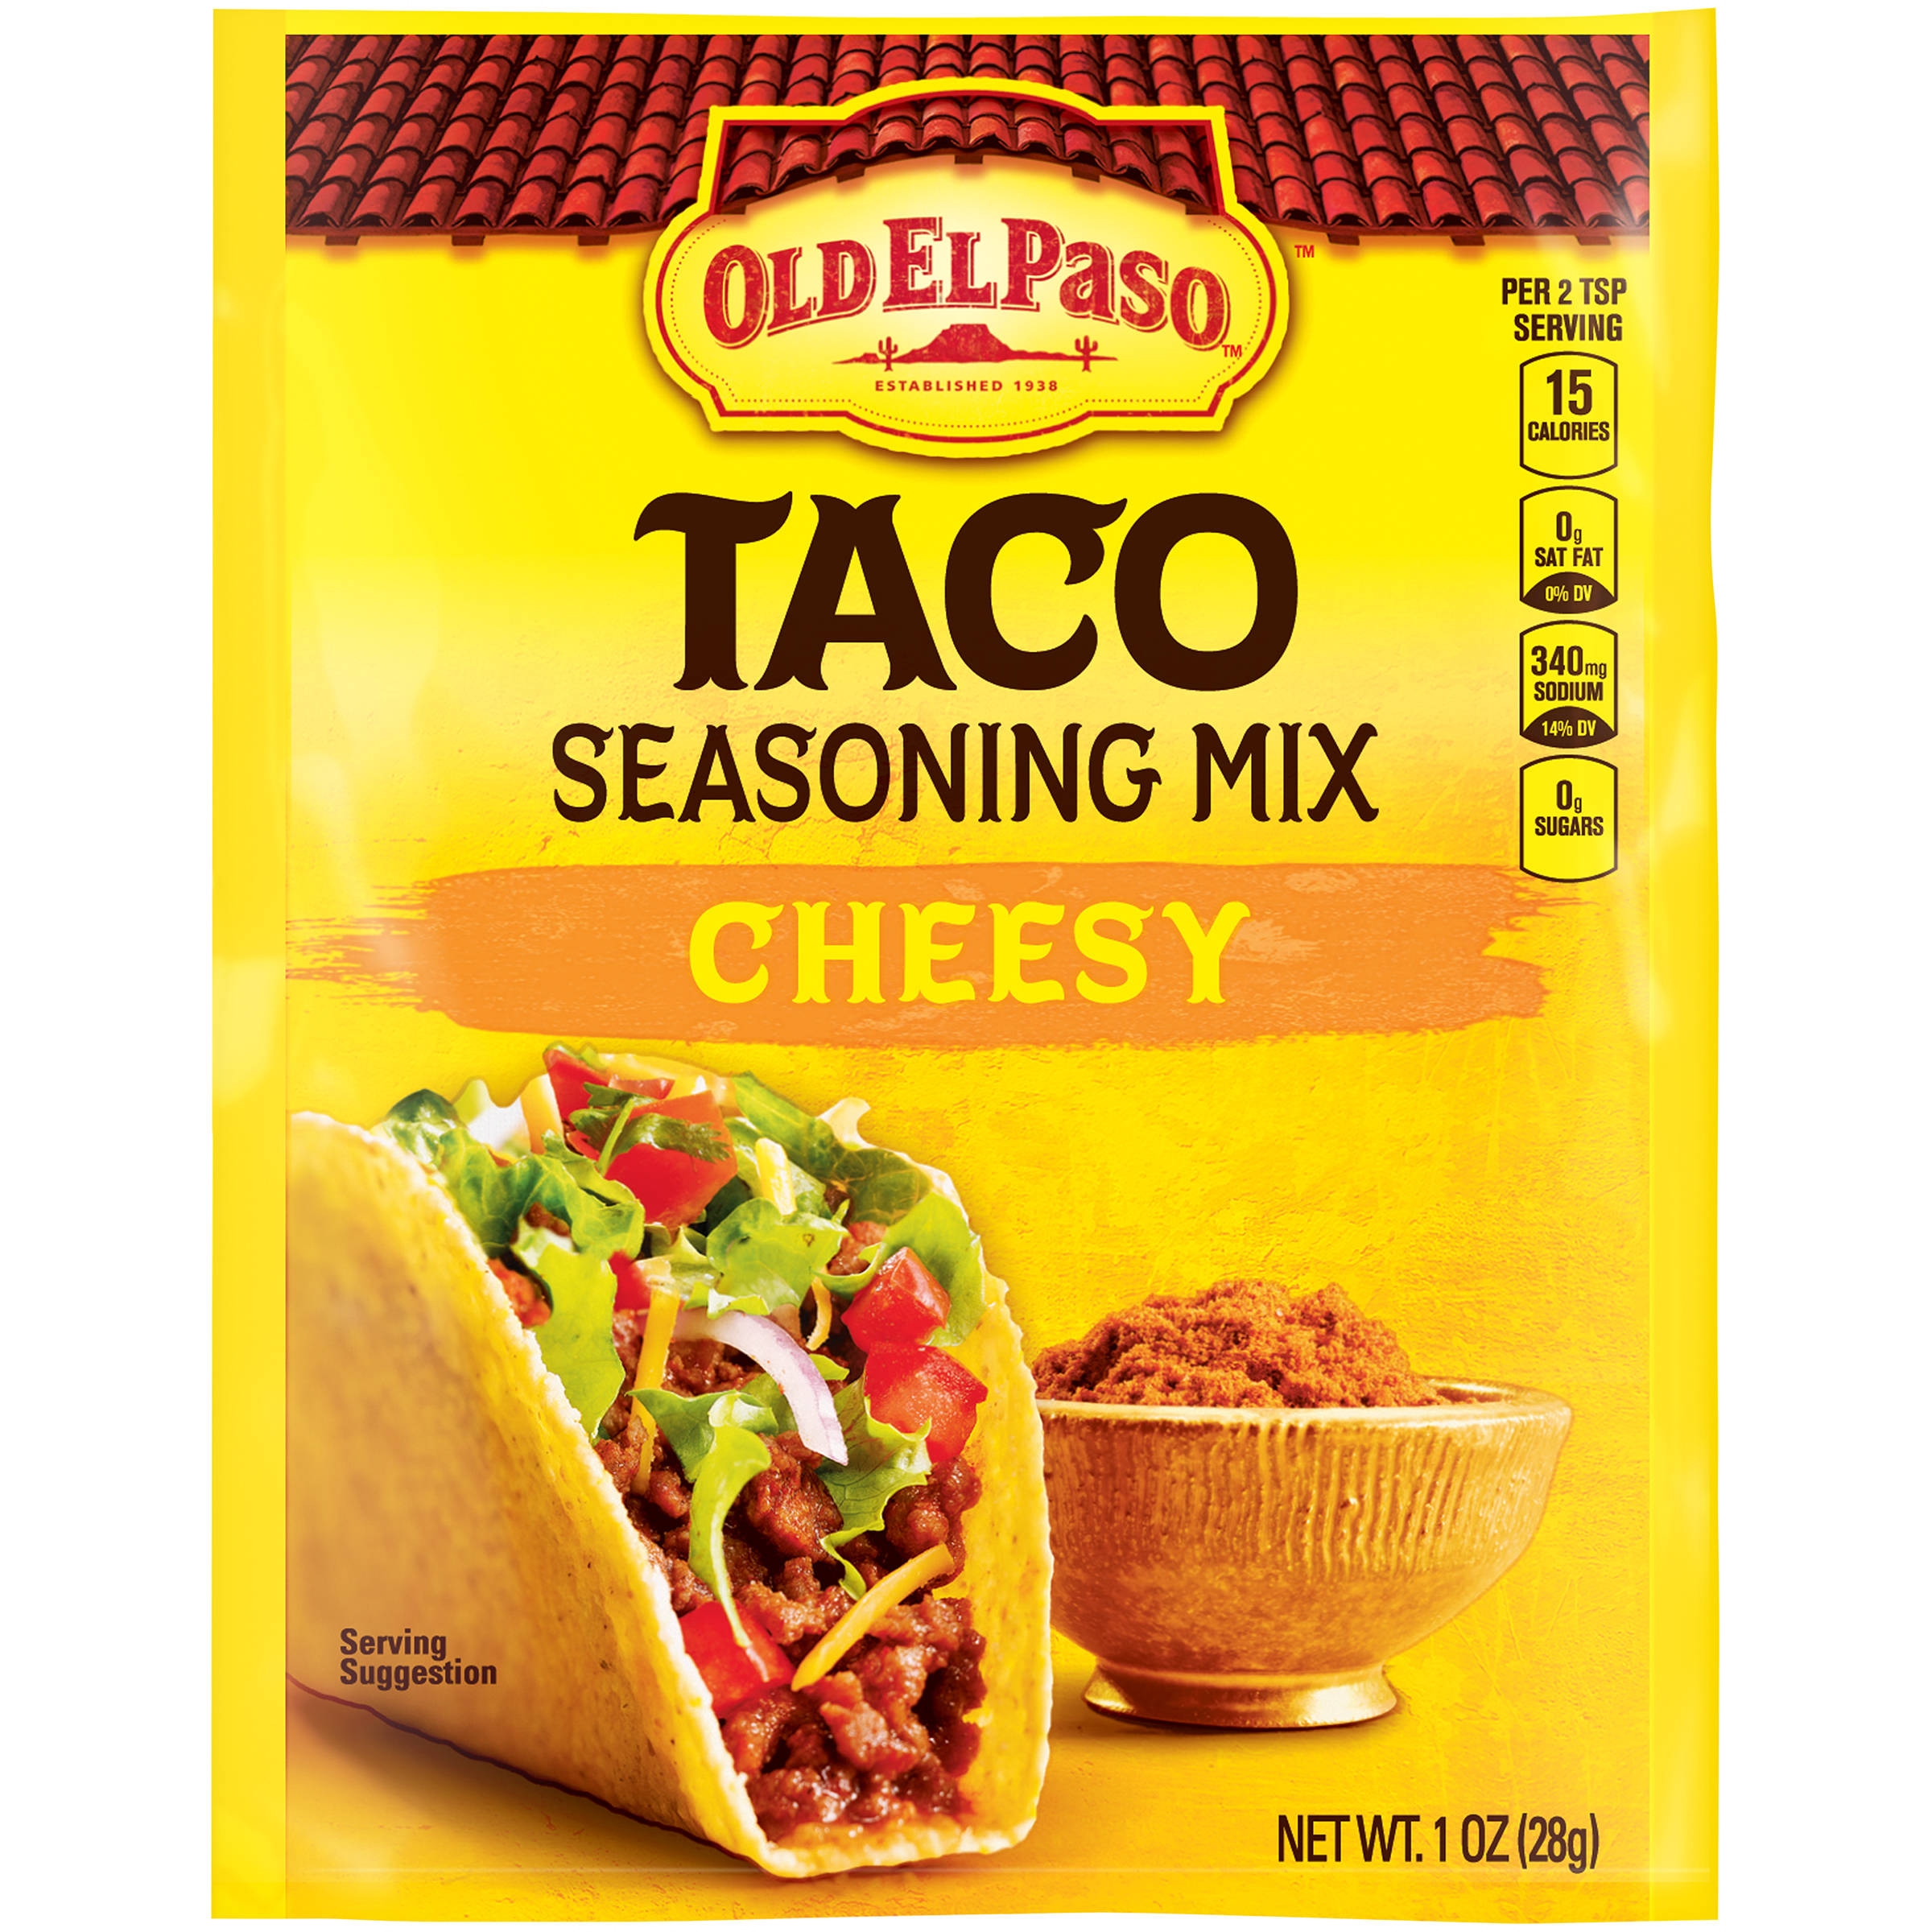 ... paso cheesy taco seasoning mix 1 oz packet 4 4 2 tsp 2 tsp 1 oz 1 oz